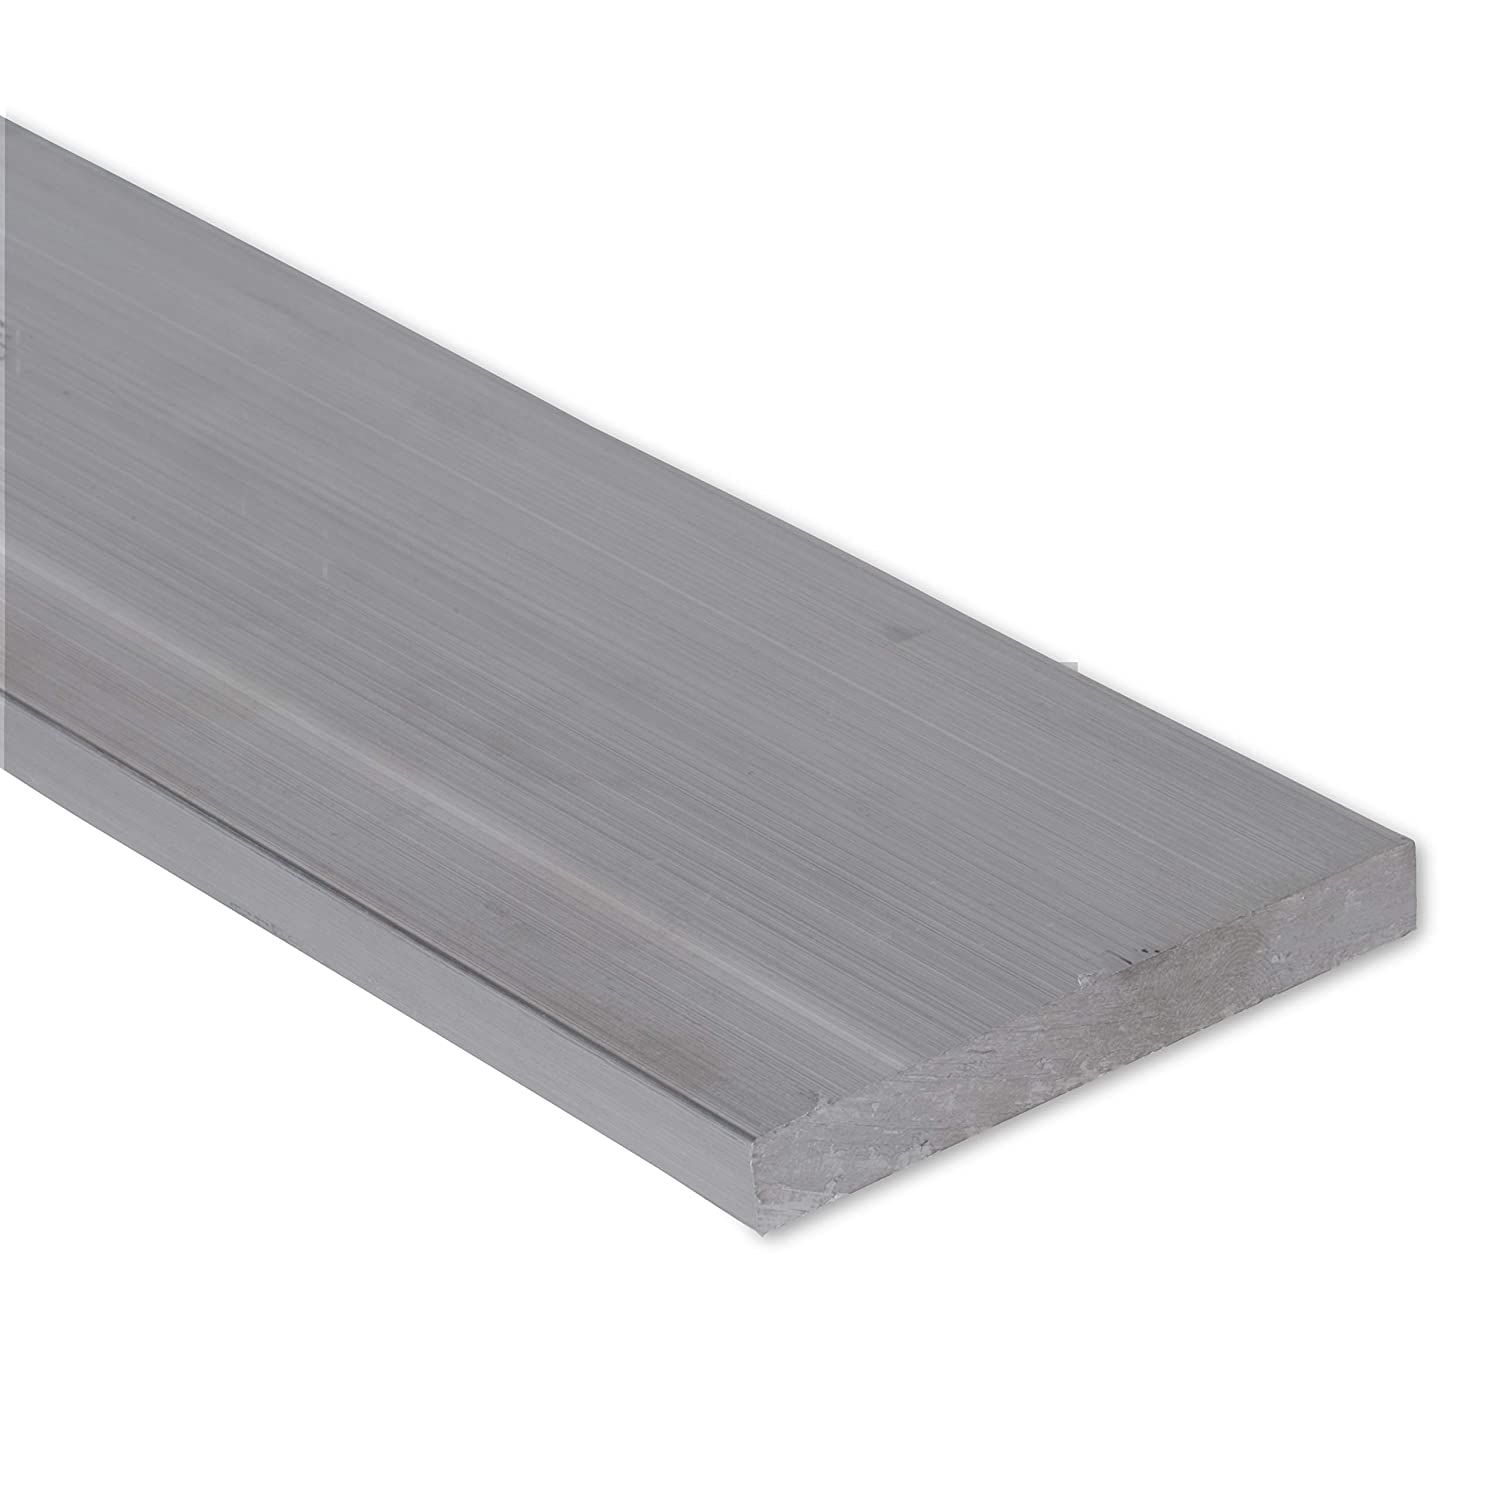 """0.25/"""" Mill Stock 6/"""" Length 304 Plate 1//4/"""" x 2/"""" Stainless Steel Flat Bar"""